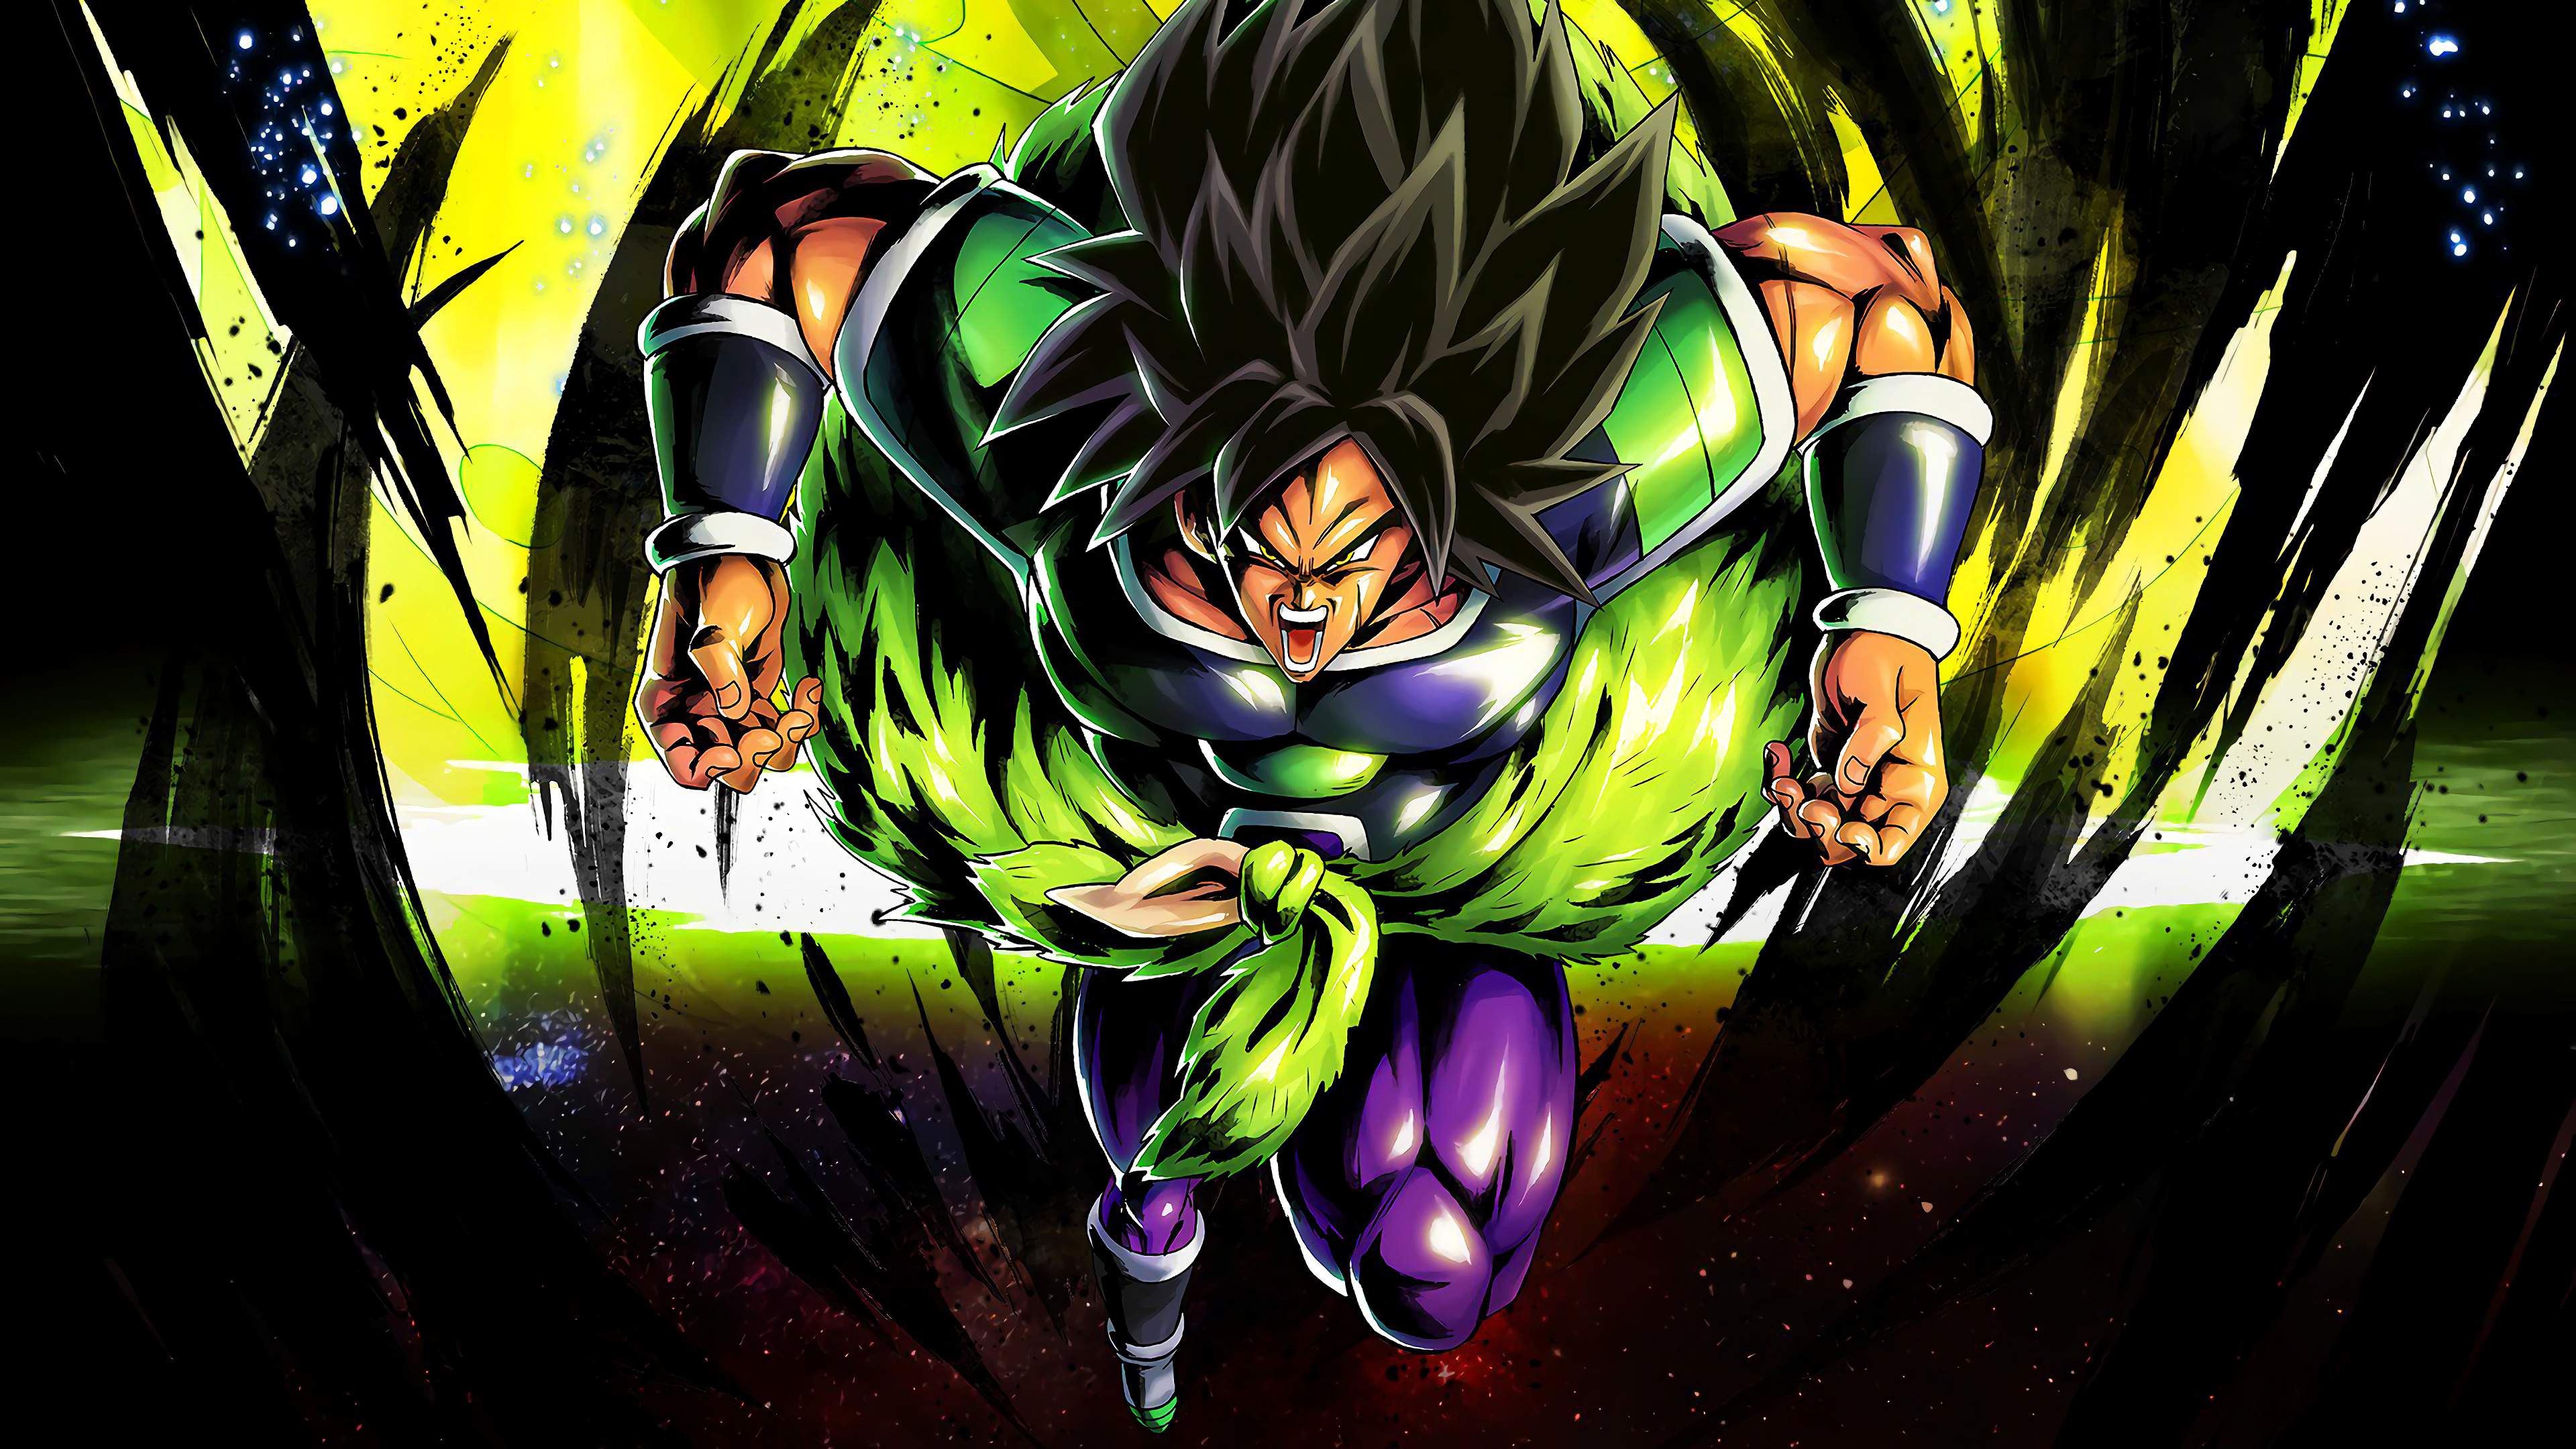 Free Download 4k Tapete Dragon Ball Super Broly Wallpaper 4k